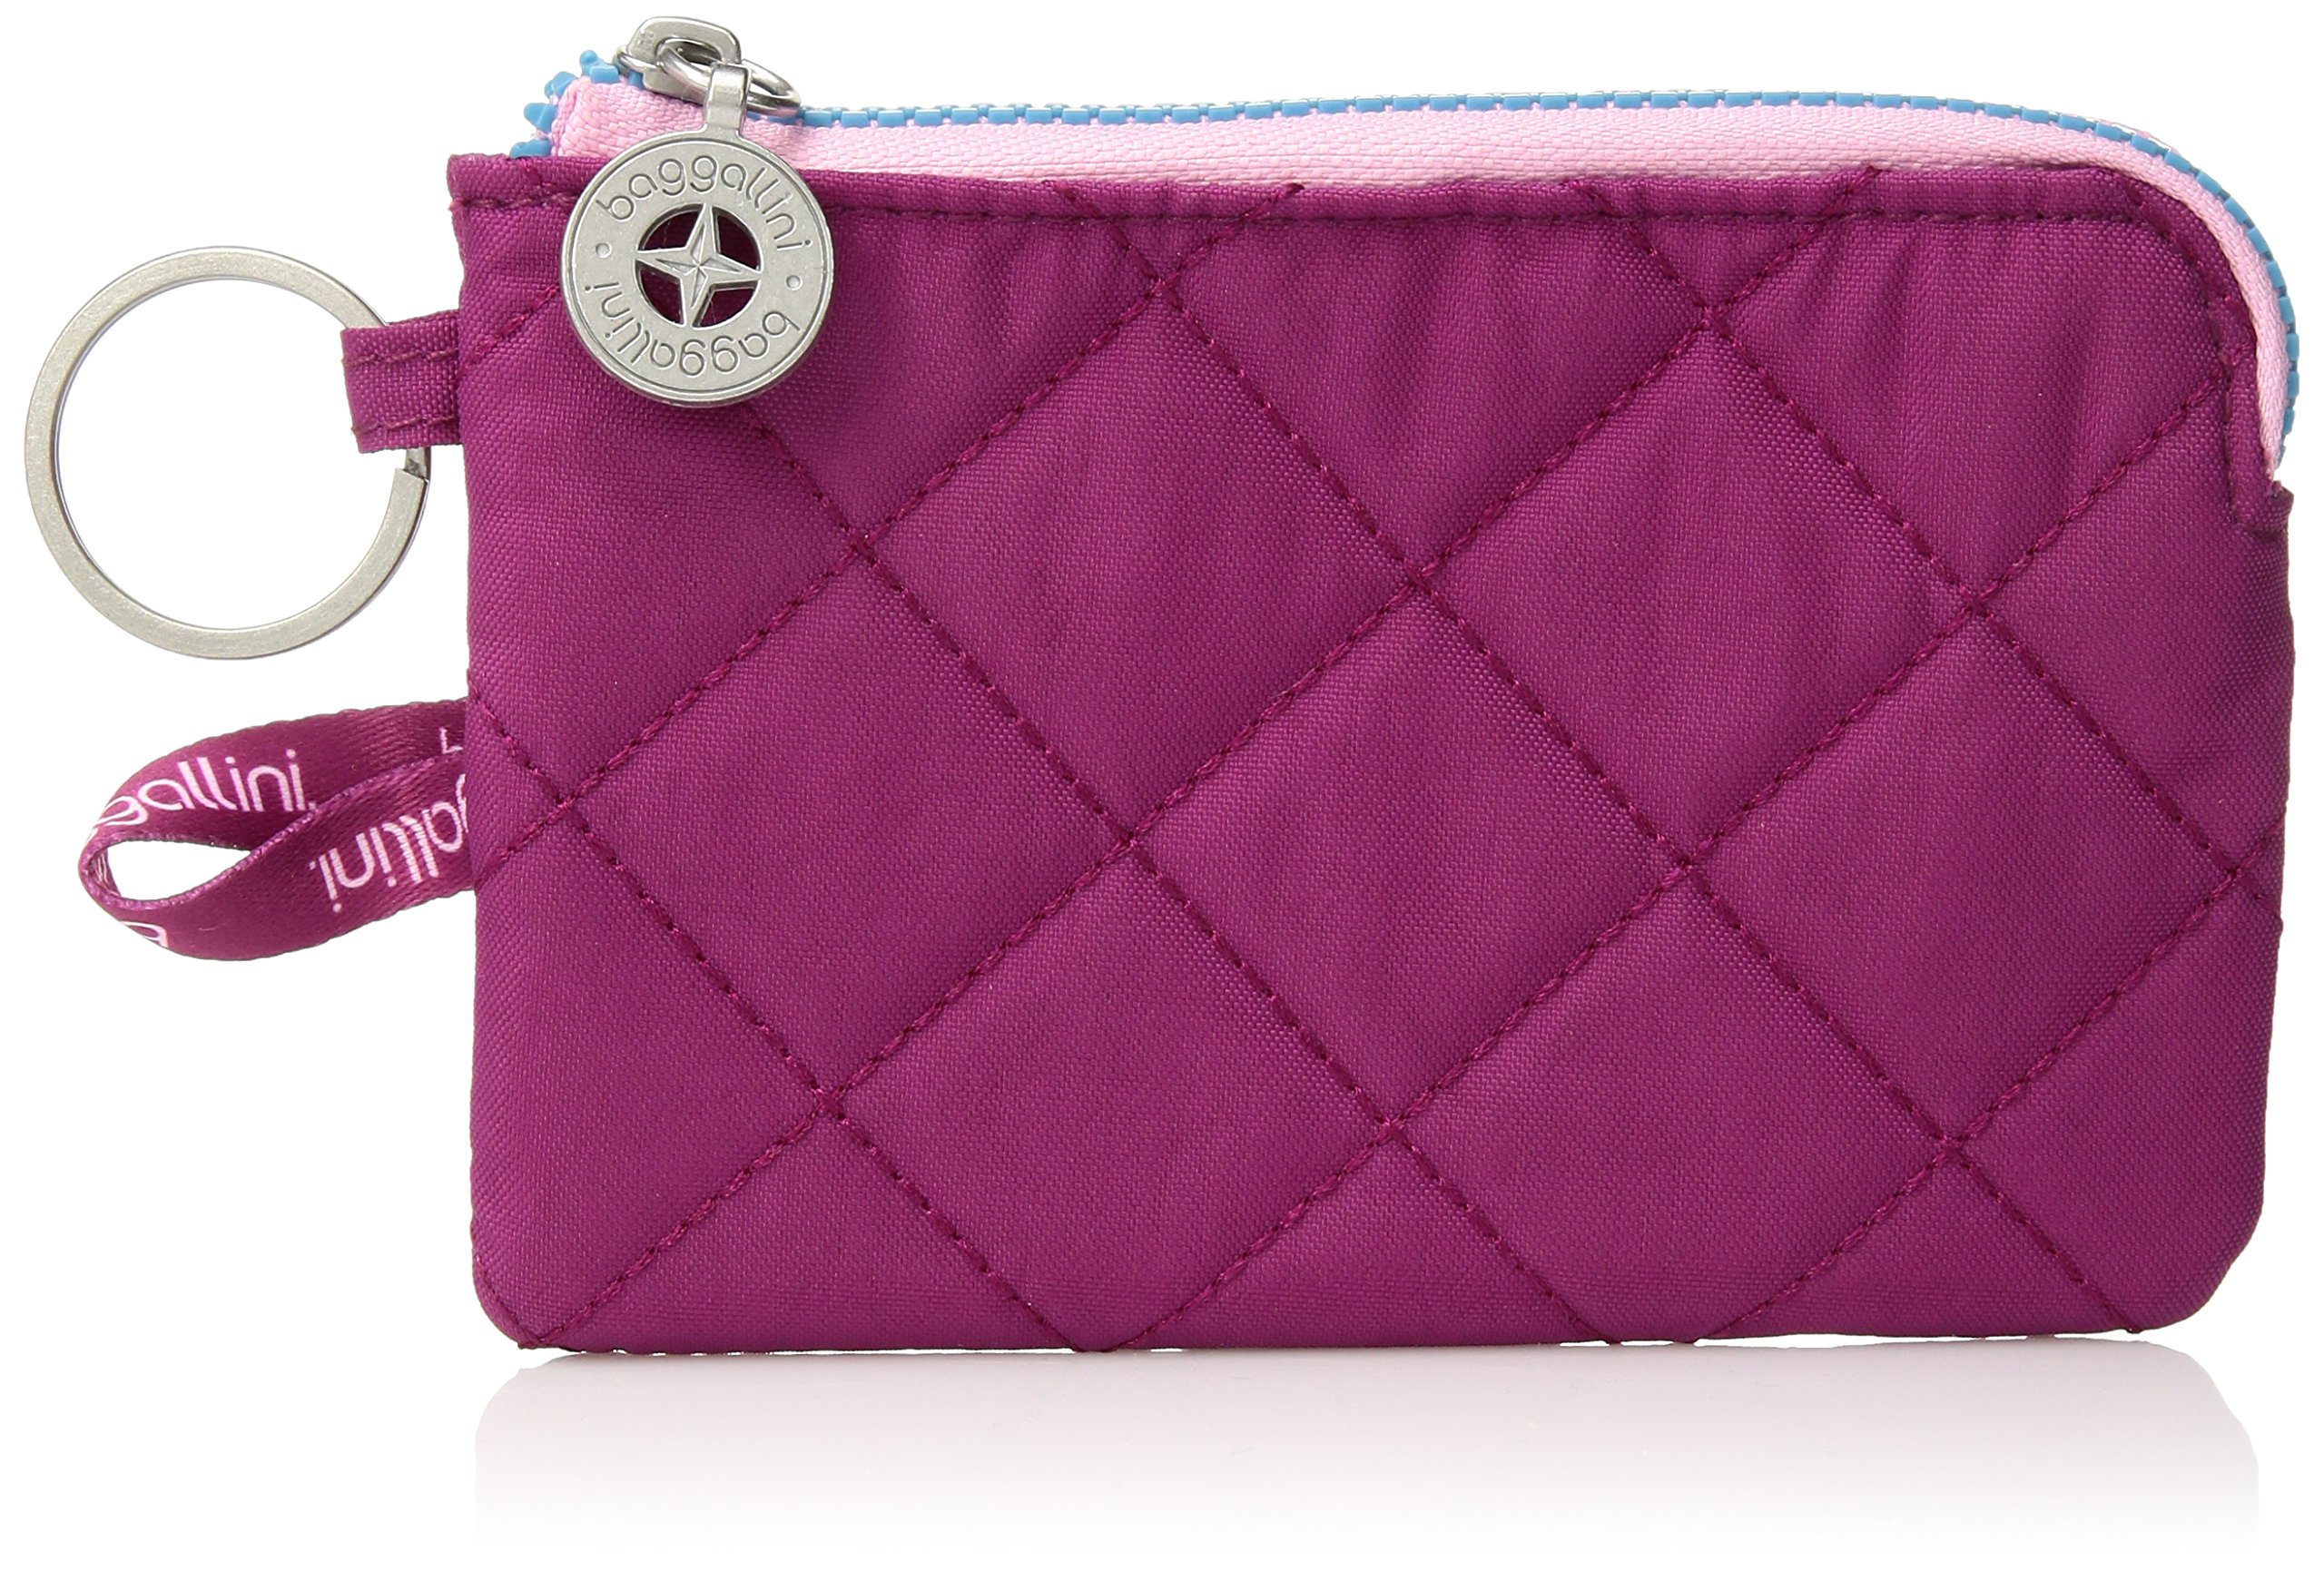 Baggallini Women's Rfid Card Case, Fuchsia/Pink, One Size